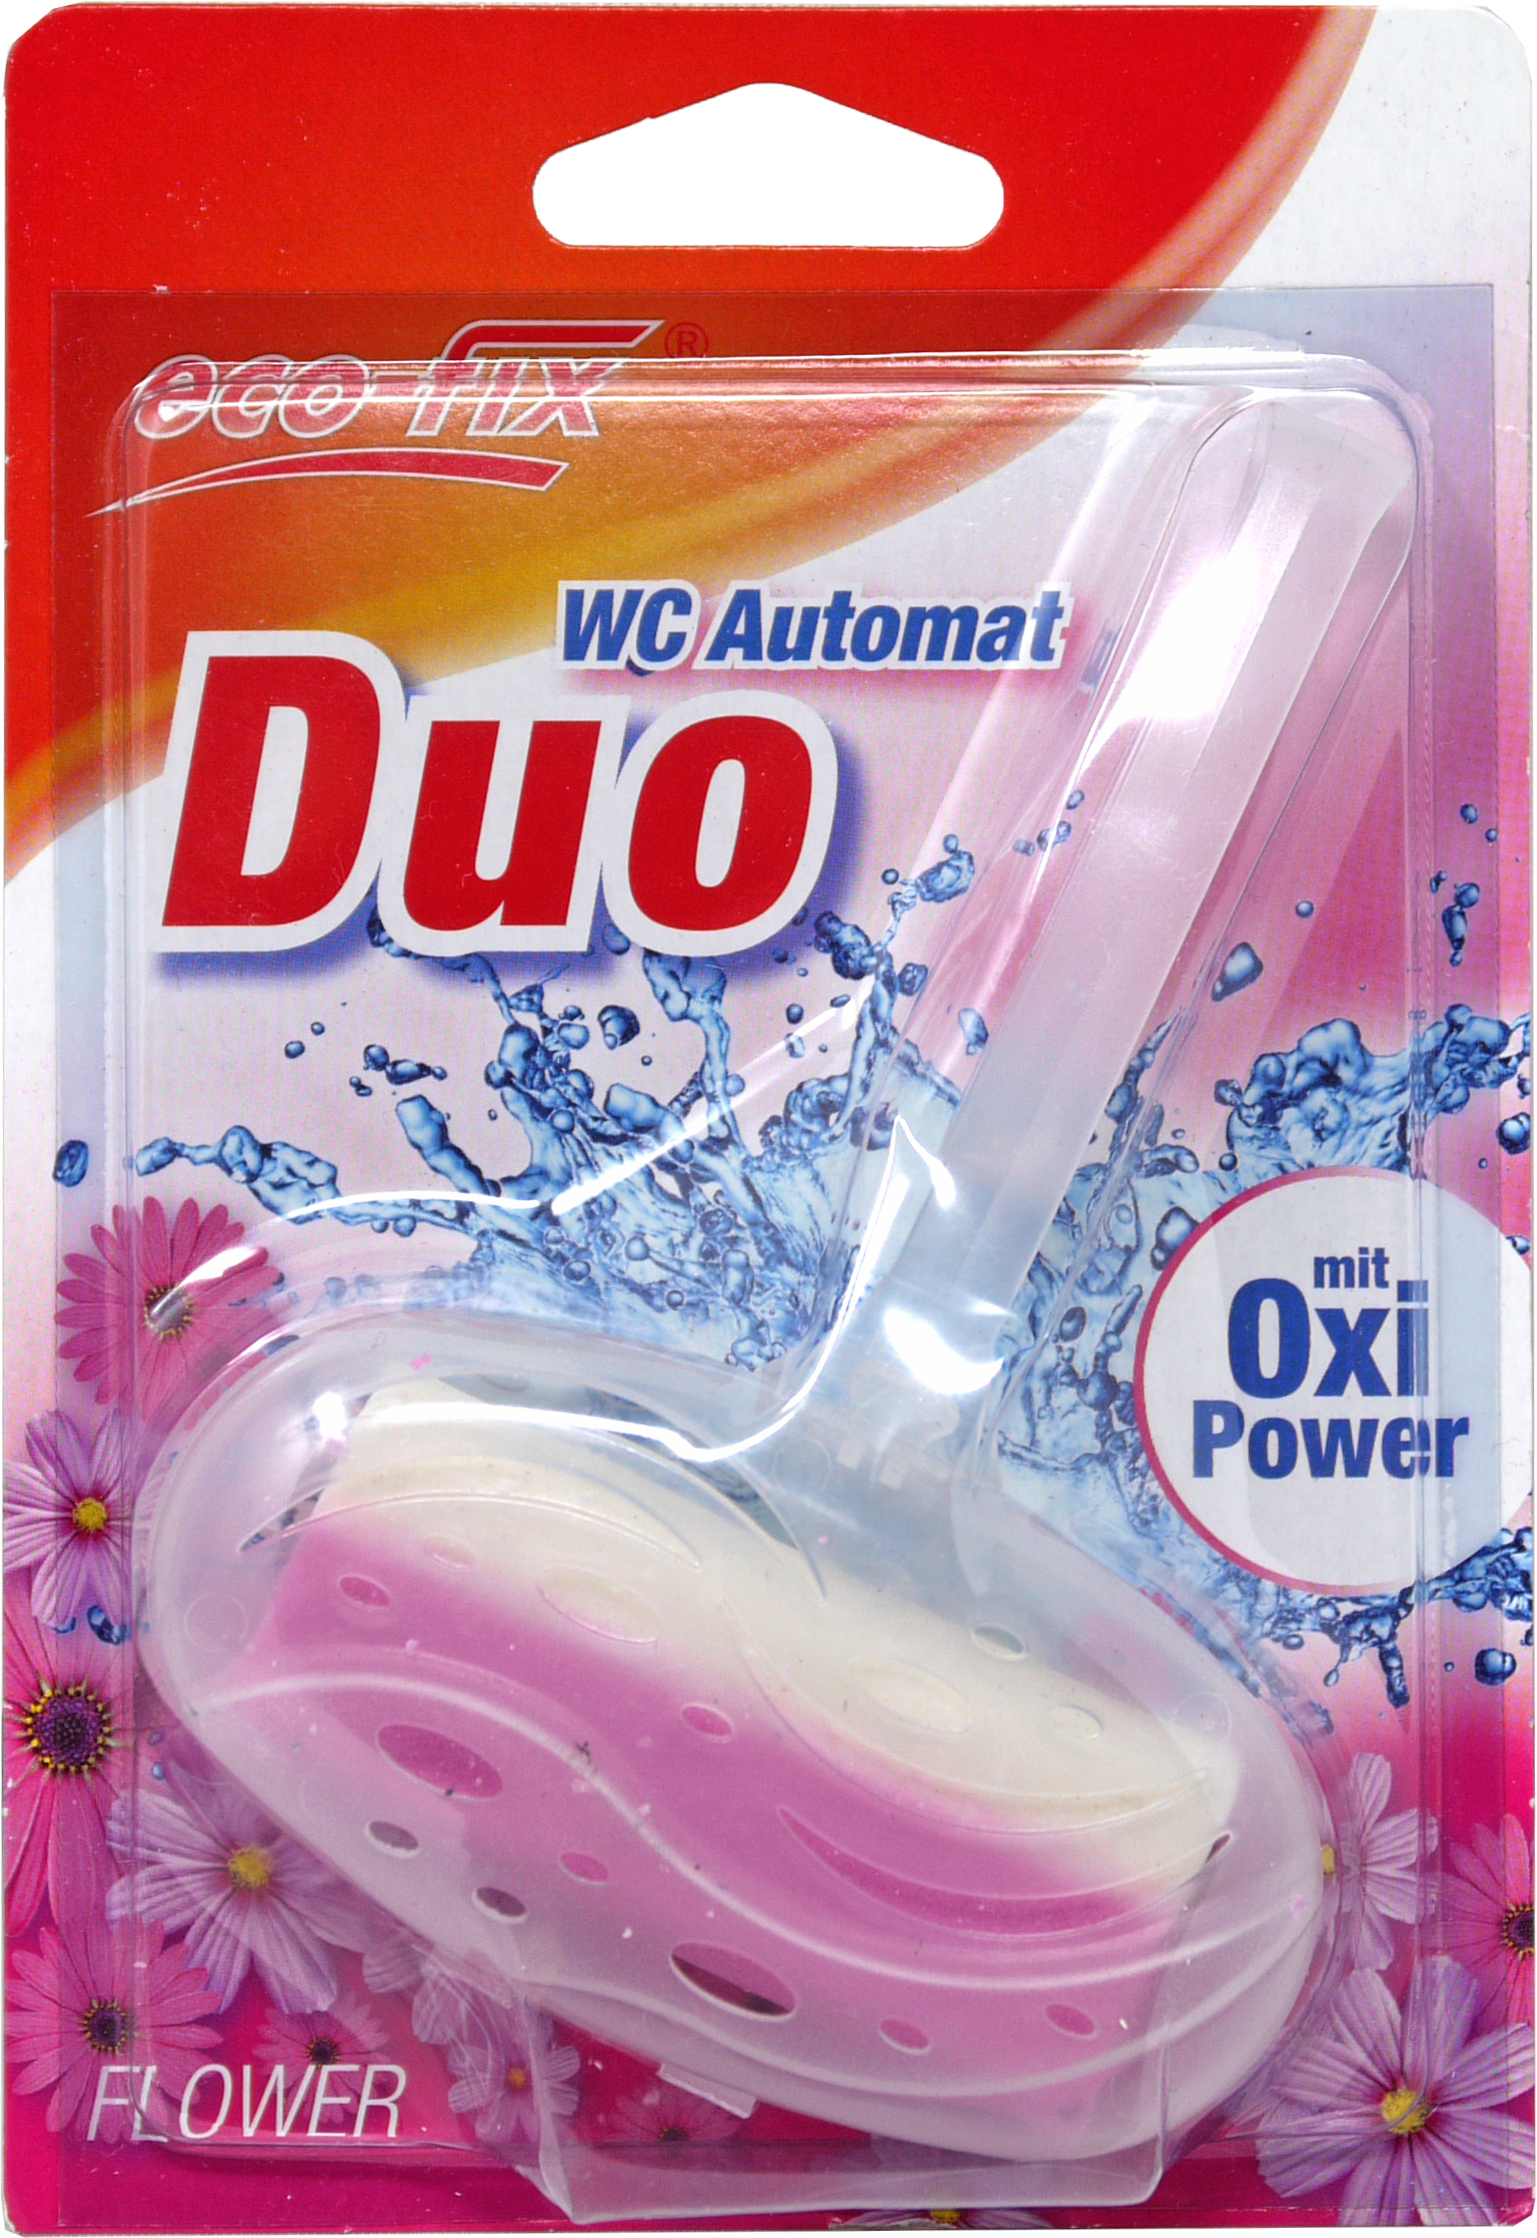 00875 - eco-fix WC Automat Duo mit Oxi-Power, 40 g., Flower